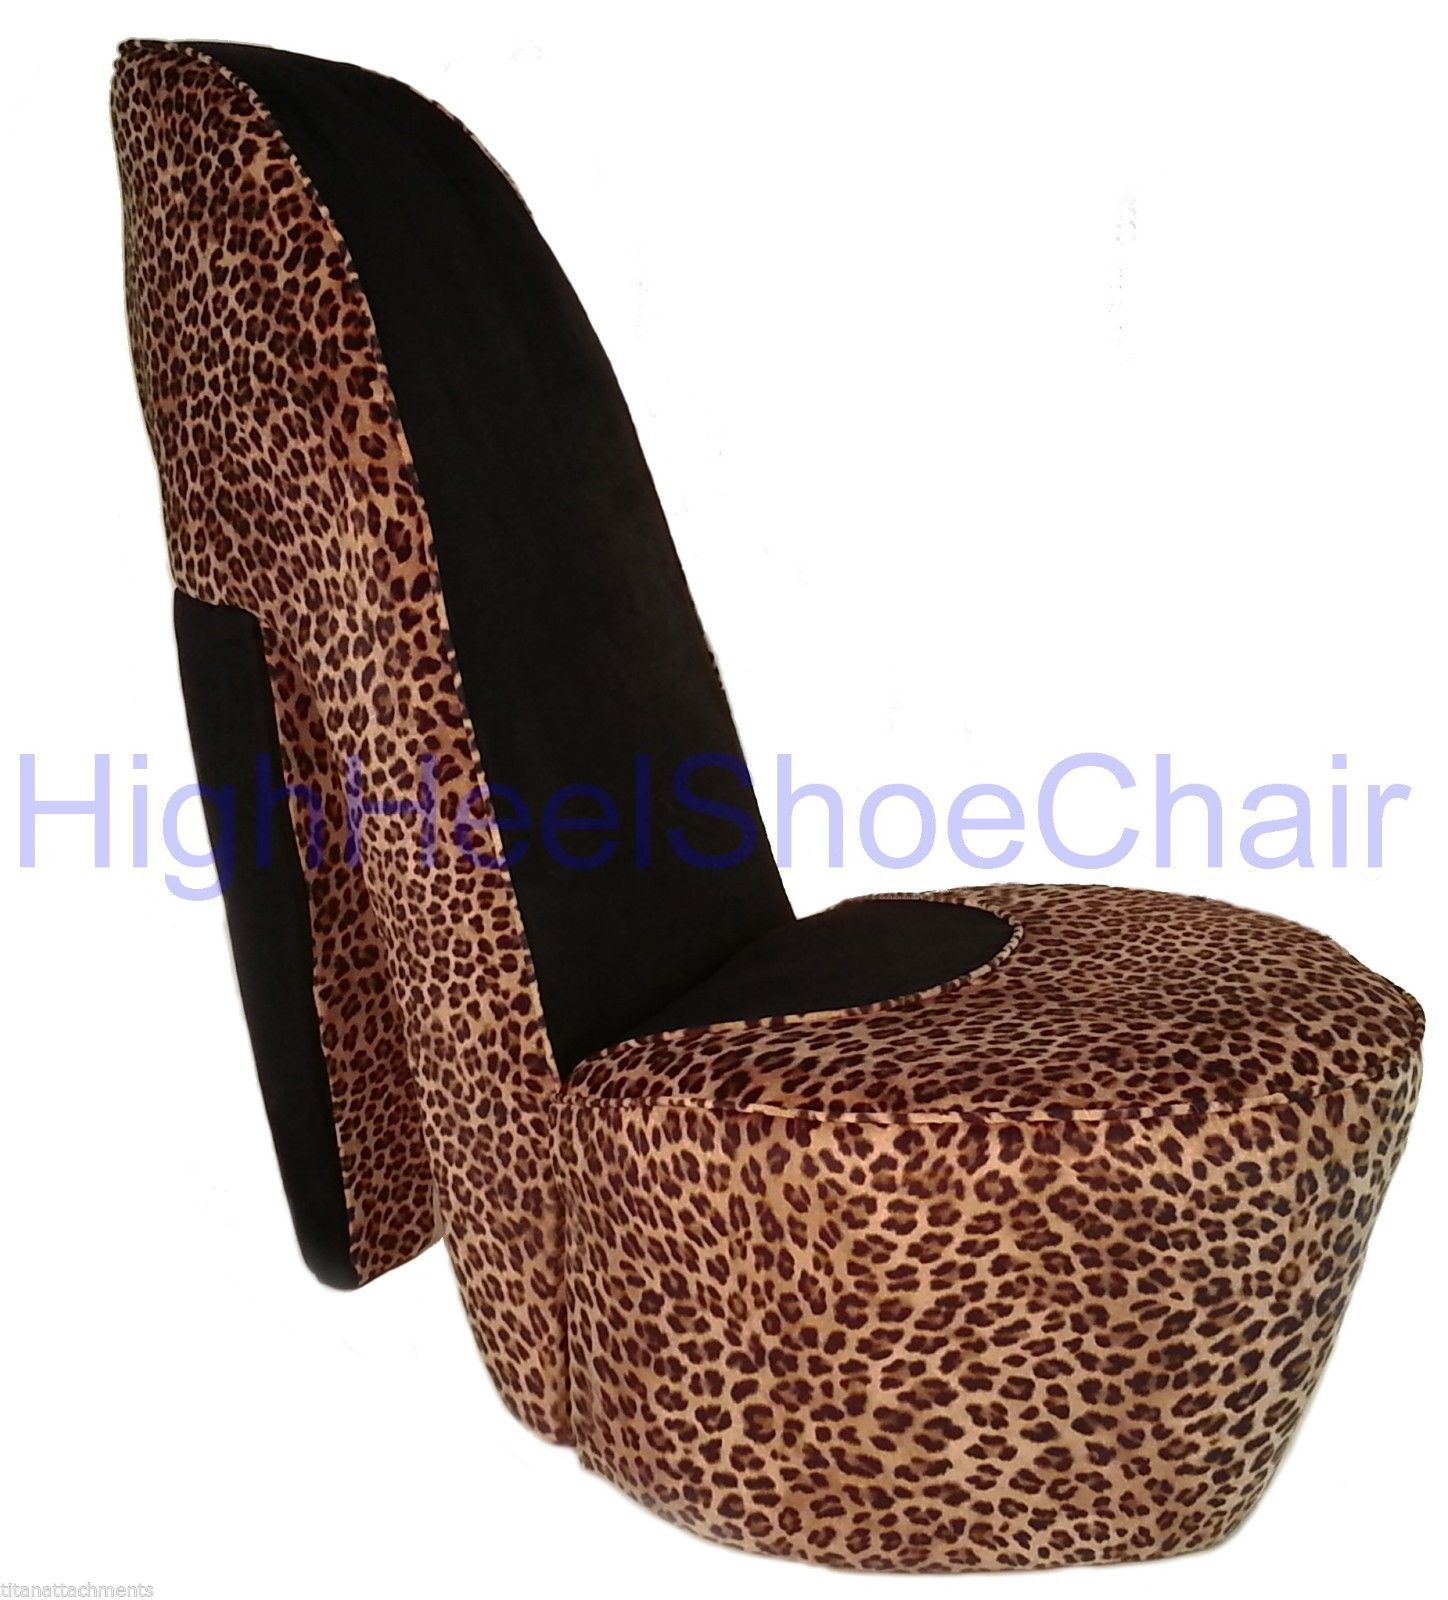 shoe shaped chair french country farmhouse table and chairs full size leopard high heel diva shoechair